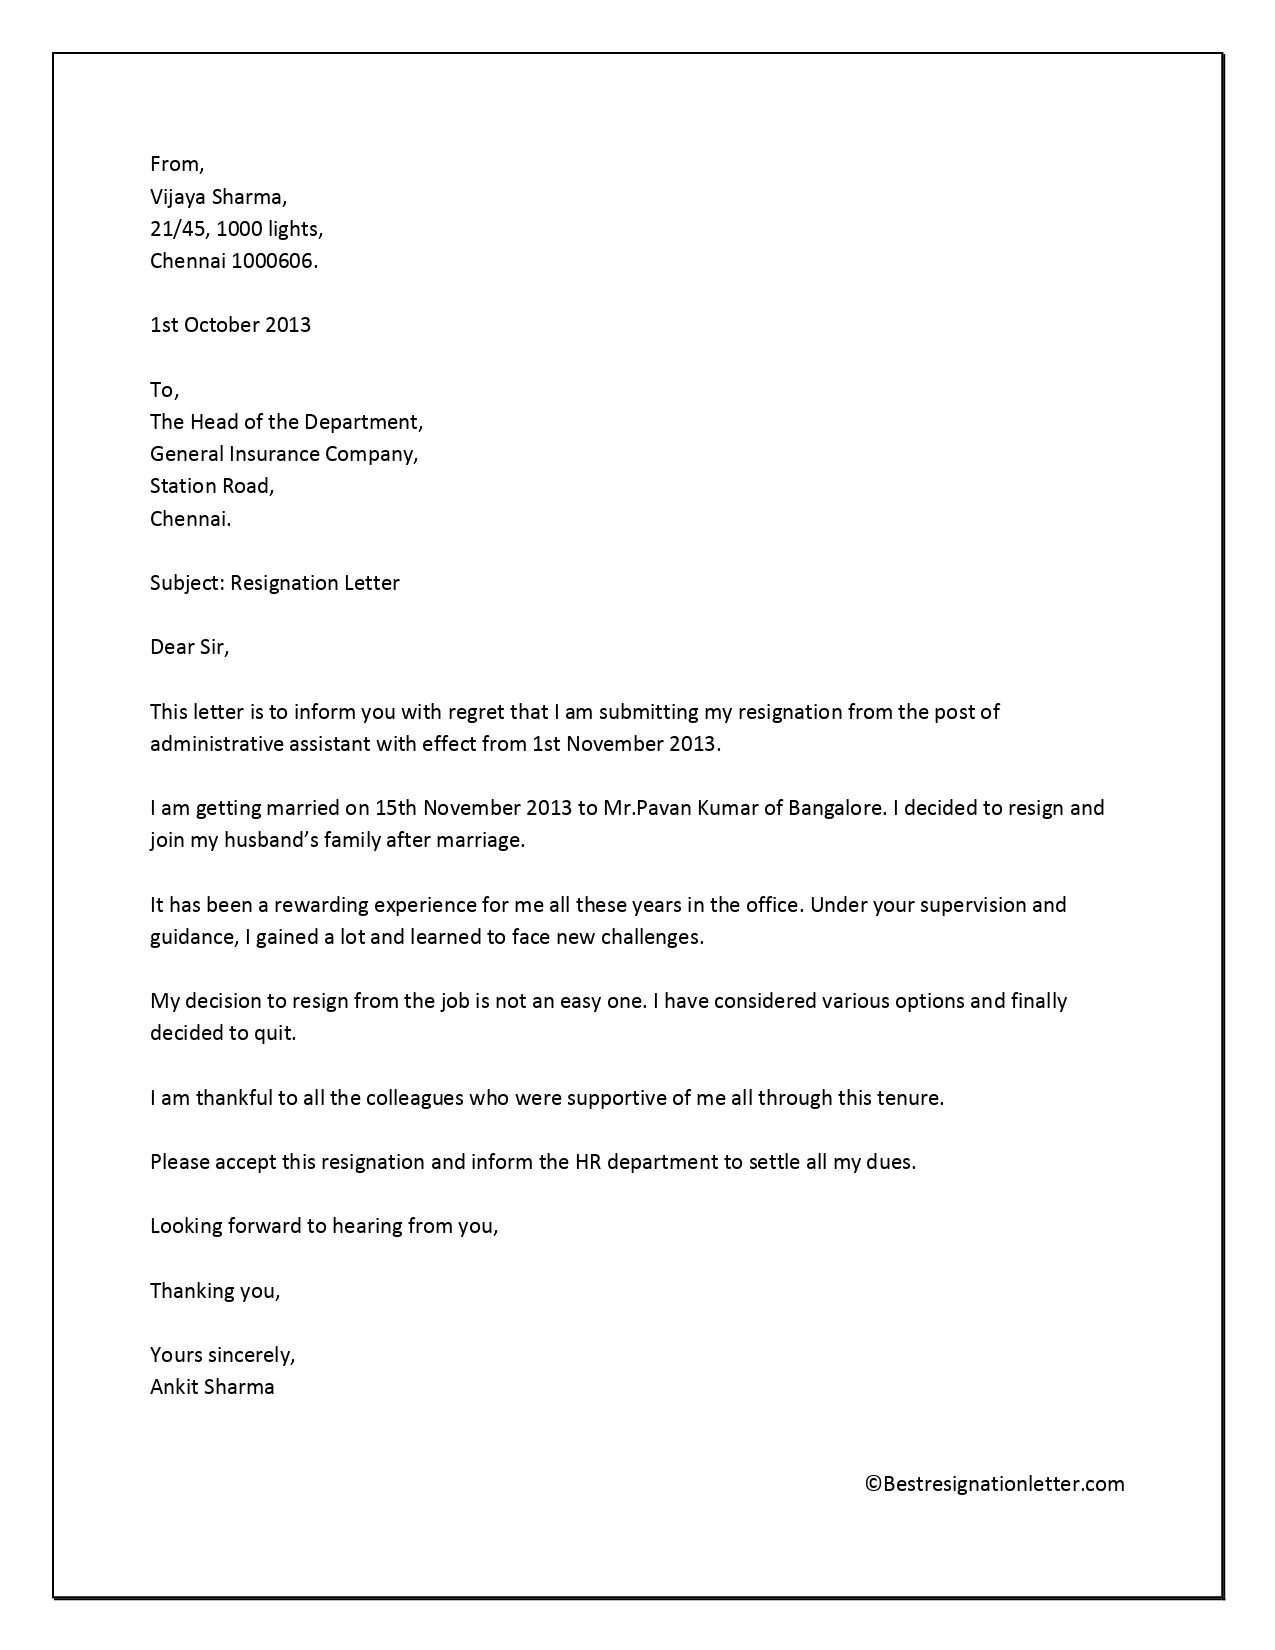 Resign From Job Letter from i.pinimg.com